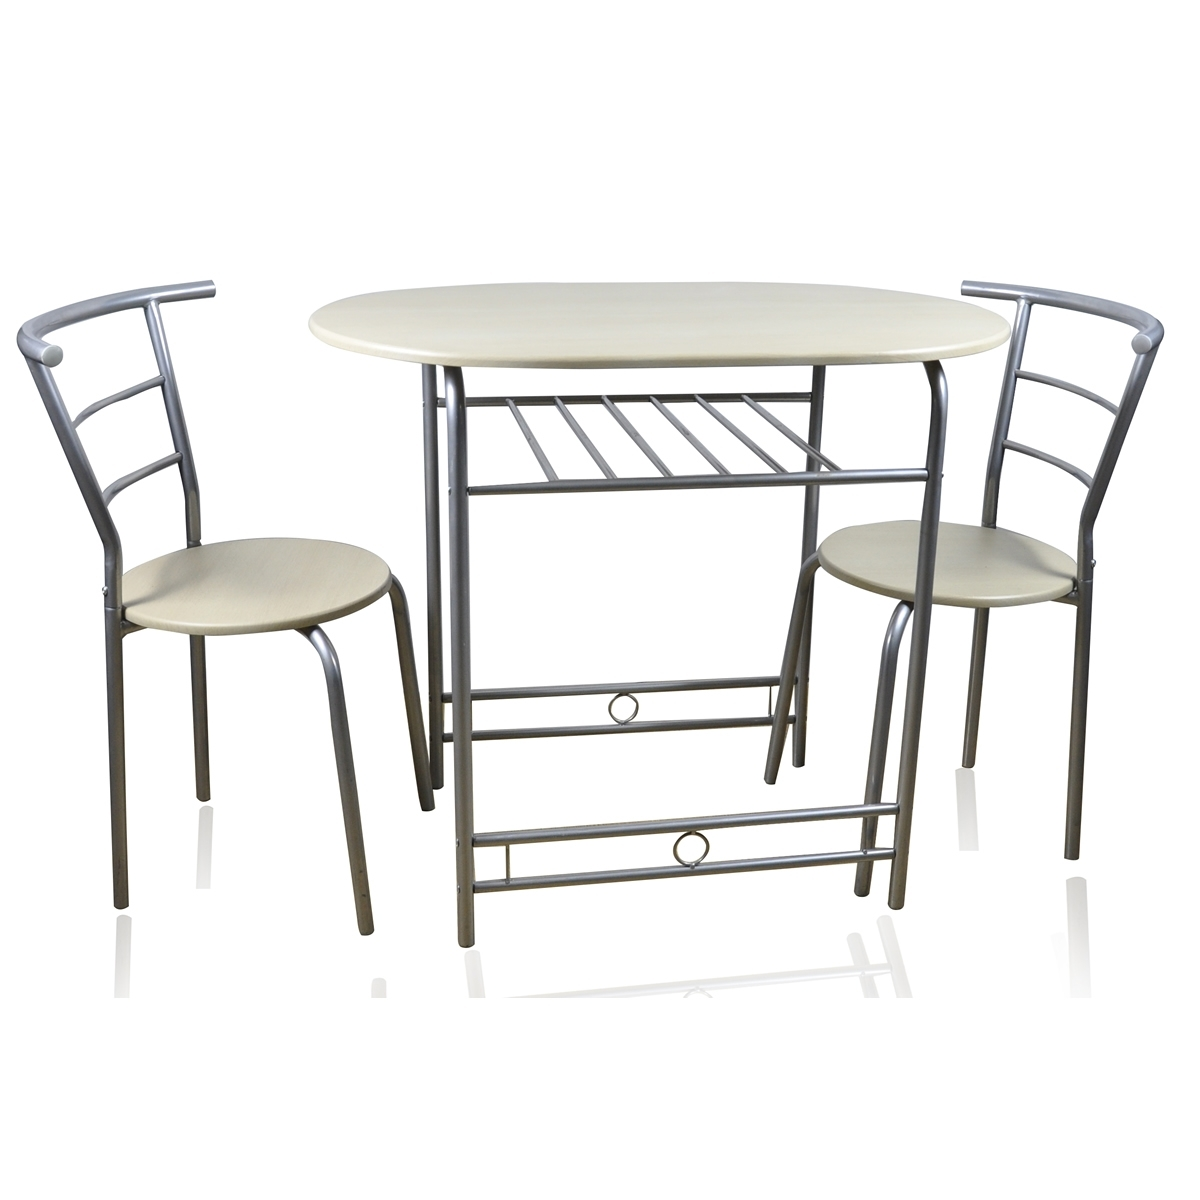 Two Seater Dining Tables Inside Trendy 2 Seater Dining Table And Chairs Gallery Dining Modern Leather (View 5 of 25)